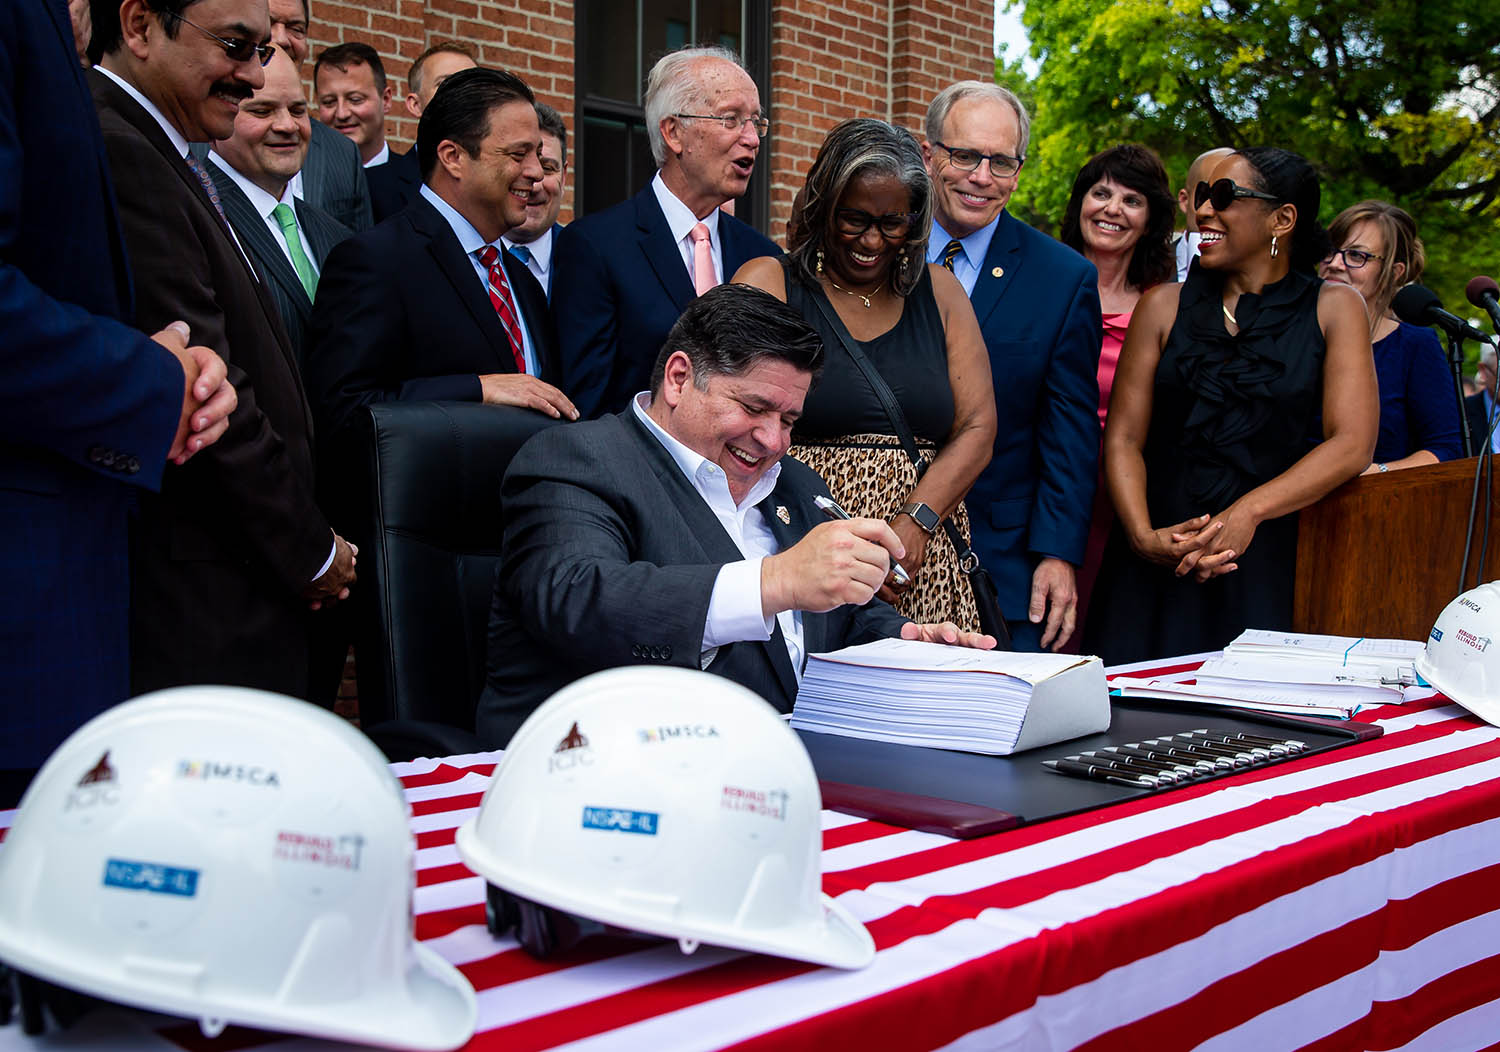 Illinois Gov. J.B. Pritzker signs into law a massive expansion of gambling in Illinois and a $45 billion construction and infrastructure plan during a ceremony outside the Lincoln Depot, Friday, June 28, 2019, in Springfield, Ill. The capital plan includes $122 million to complete work on relocating train traffic in Springfield away from the Third Street corridor and onto 10th Street. [Justin L. Fowler/The State Journal-Register]